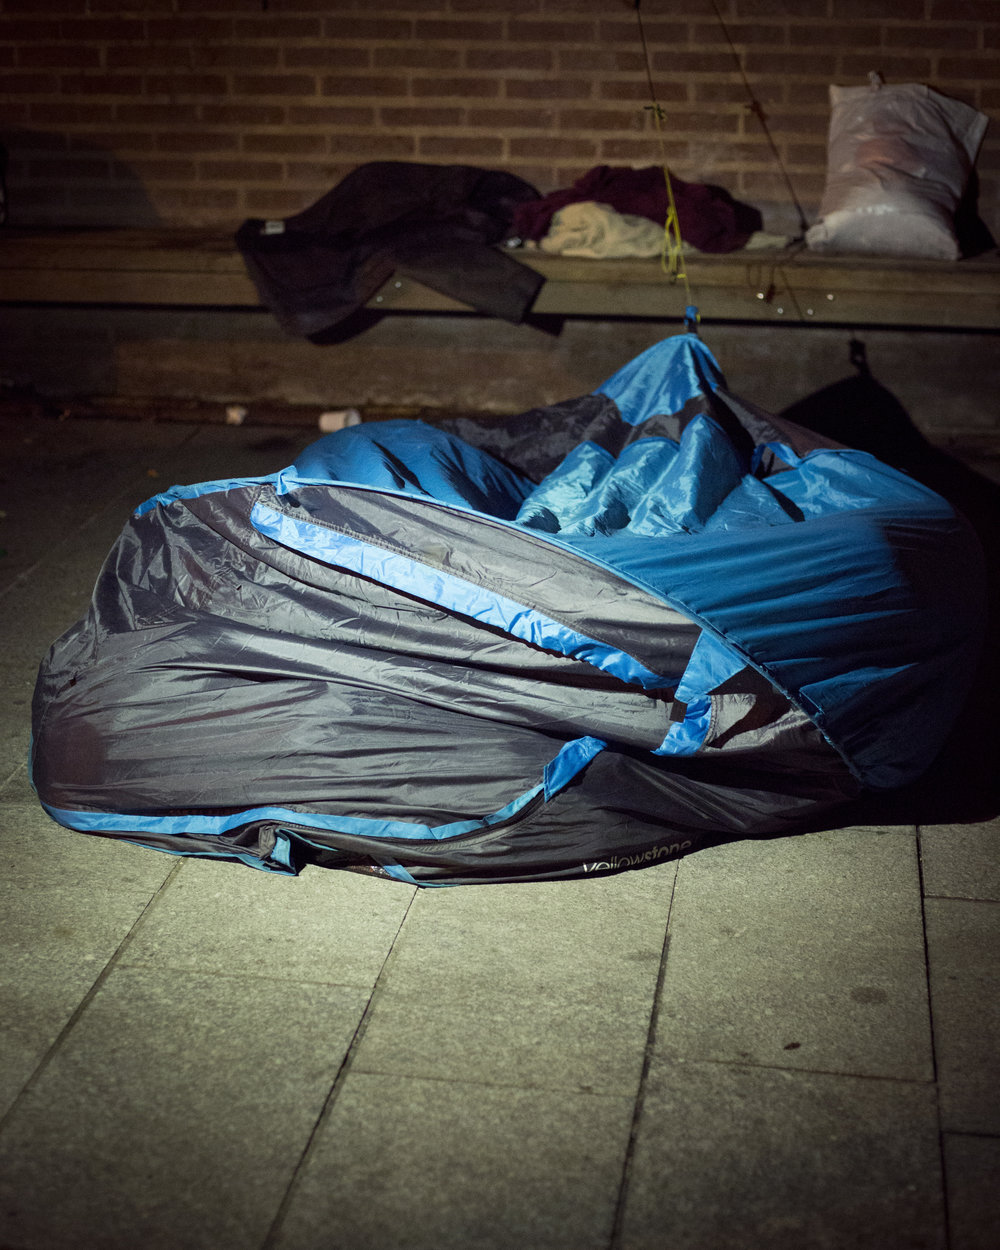 Two Men Sleeping in a Crushed Tent, St. Denis, France    For The New York Times